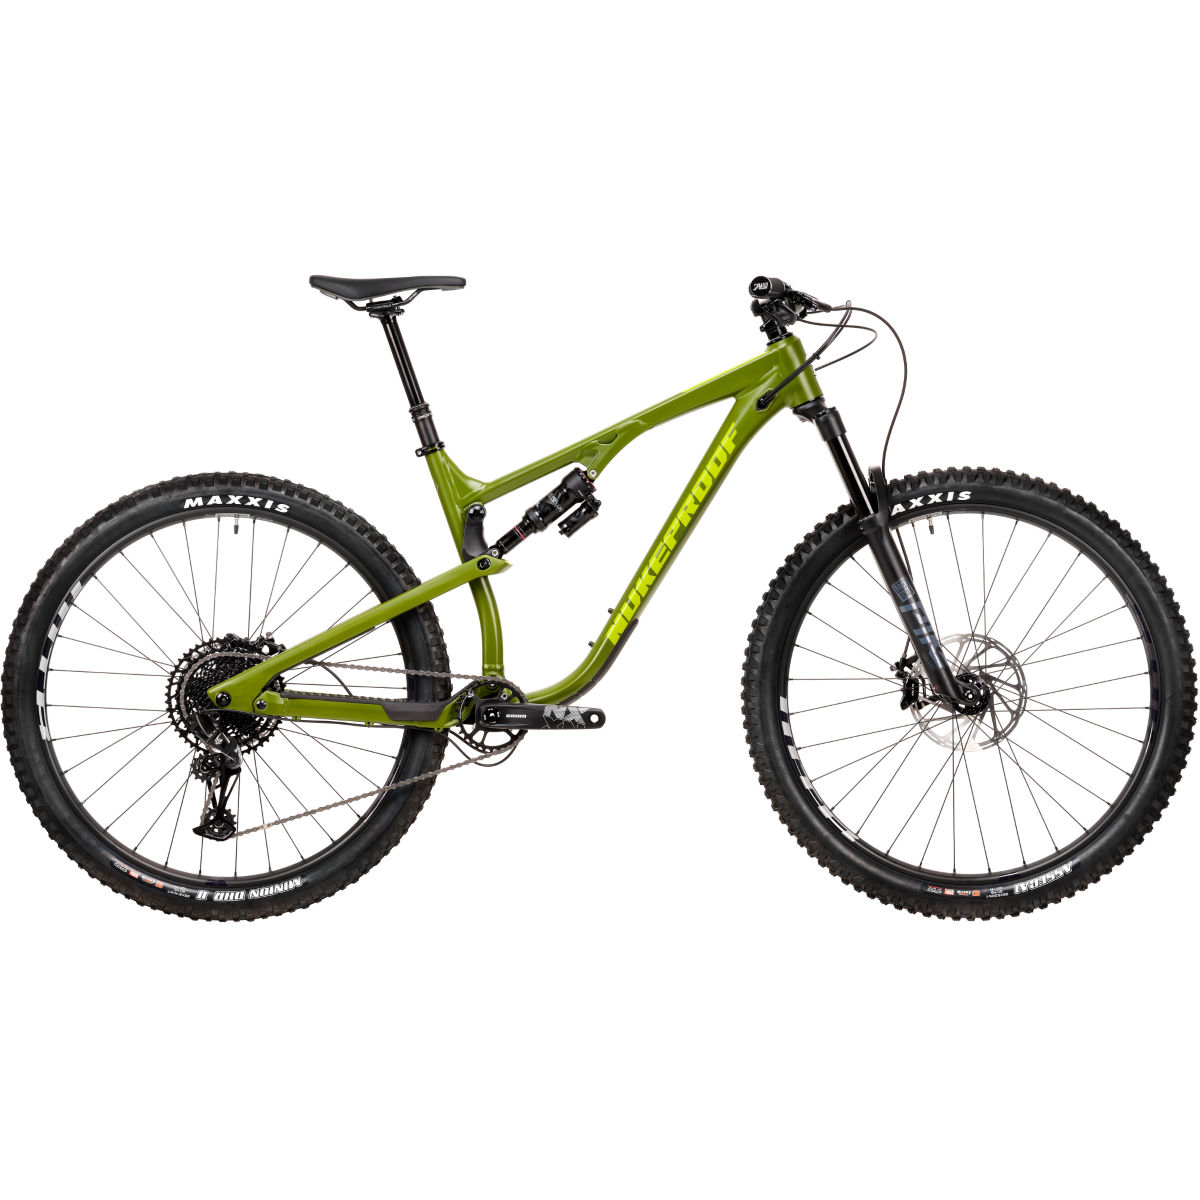 Nukeproof Nukeproof Reactor 290 Expert Alloy Bike (NX Eagle - 2020)   Full Suspension Mountain Bikes